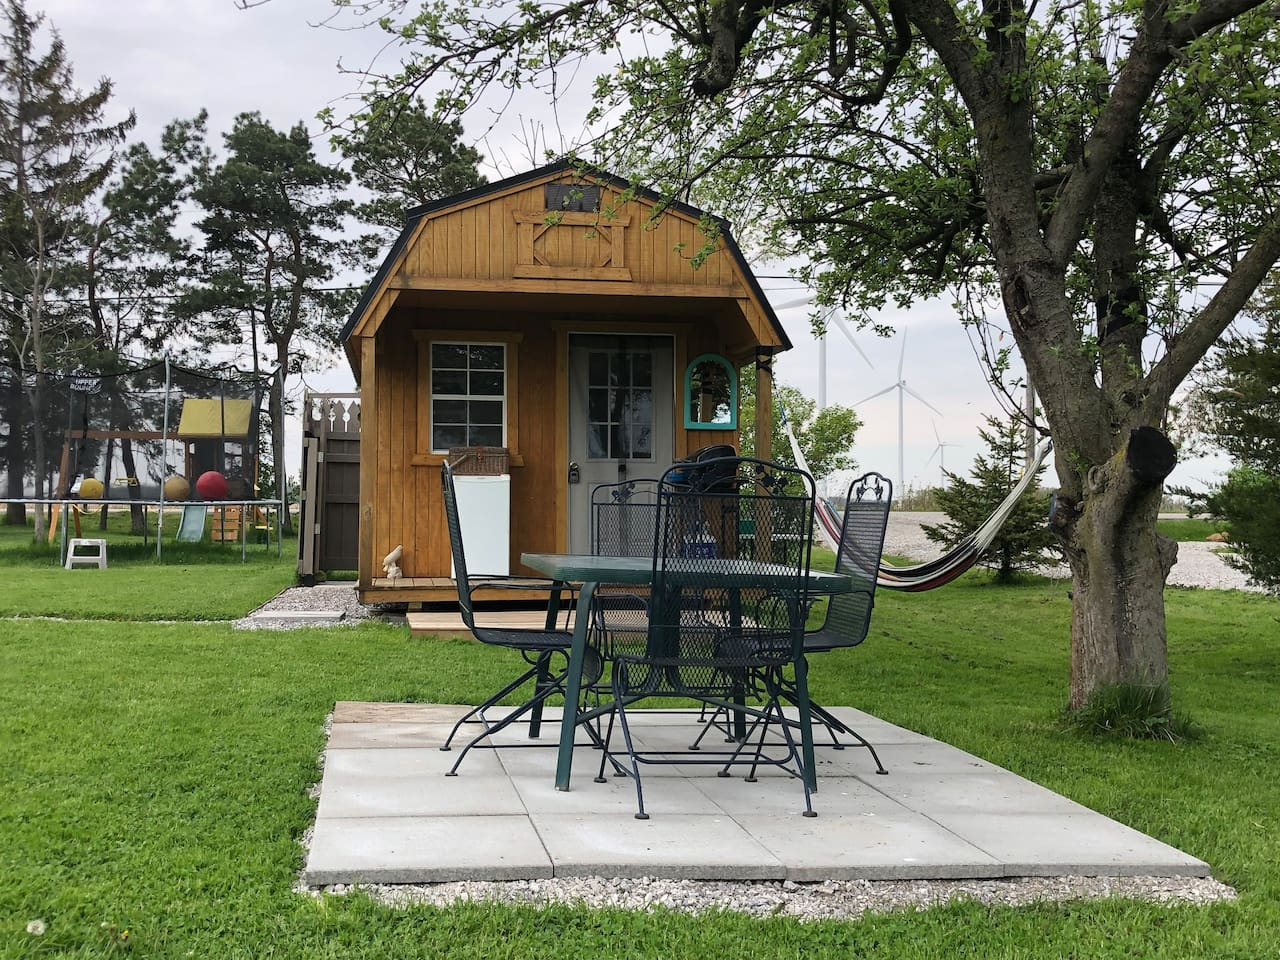 We appreciate our guests' feedback. New for 2019 are the new pavers for the dinning area under the apple tree as well as stone paths from the parking area to the Cabane and to the outdoor shower. The parking area can now accommodate 2 vehicles.